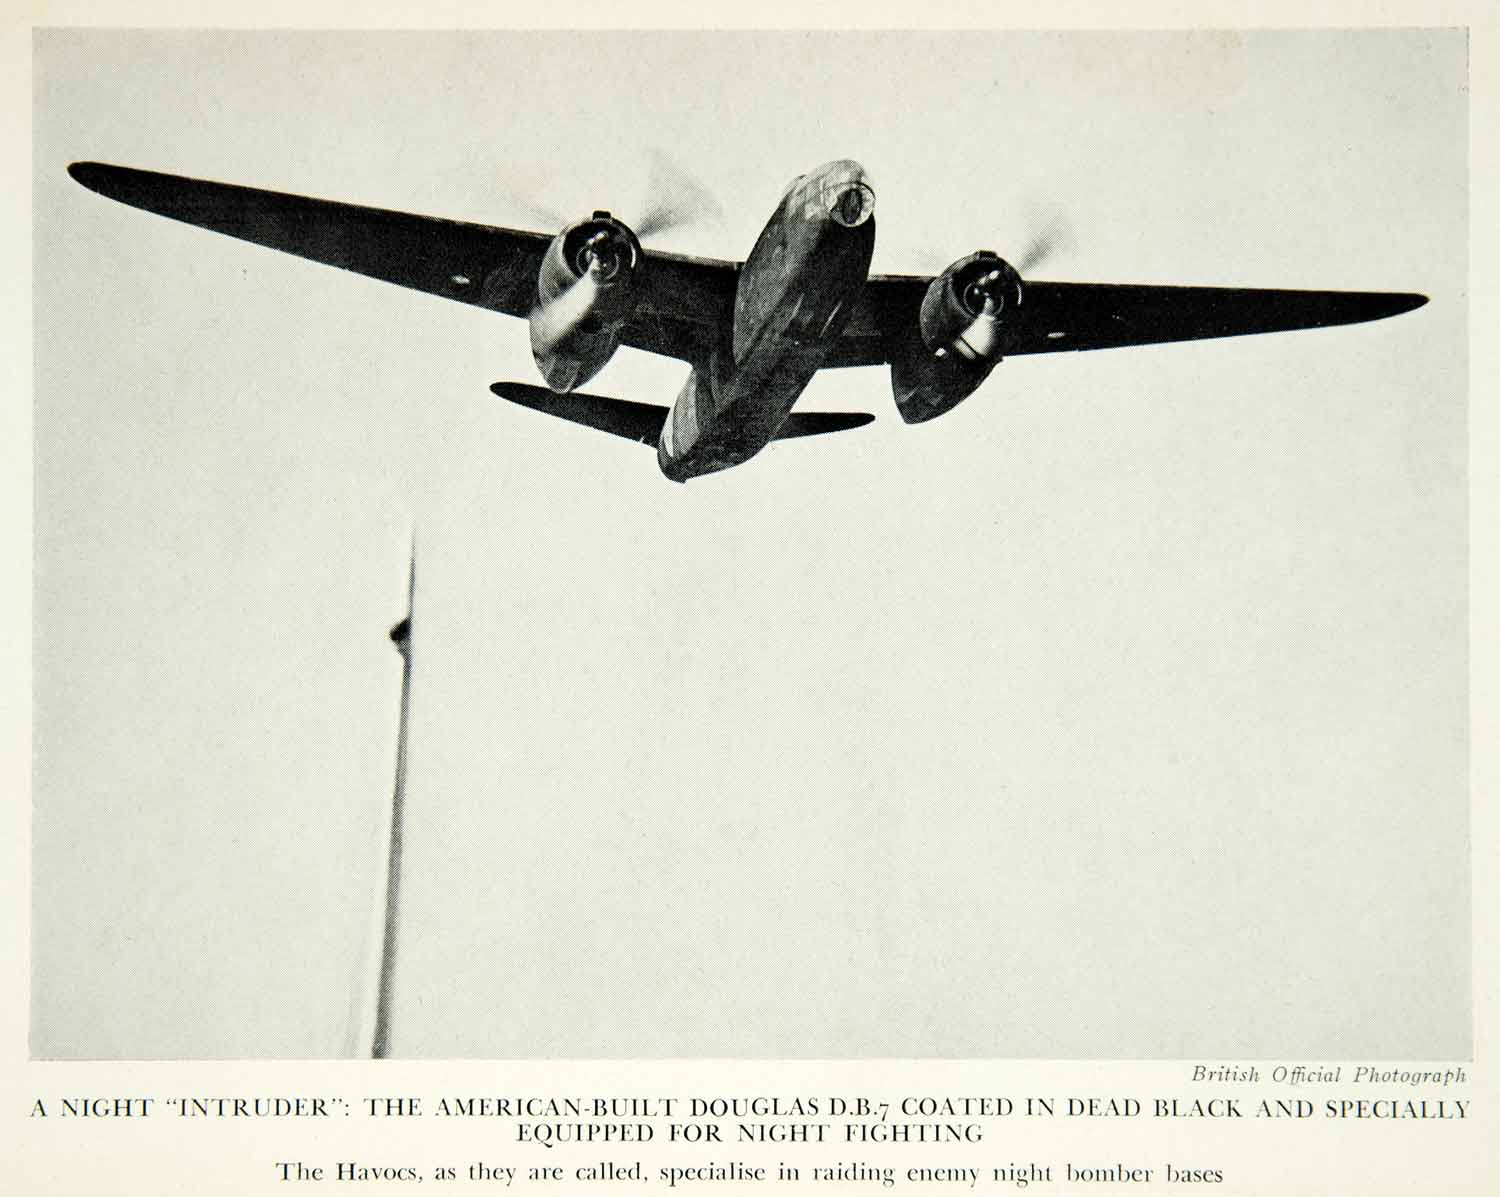 1943 Print World War II Night Intruder Havocs Douglas db-7 A-20 American XEKA1